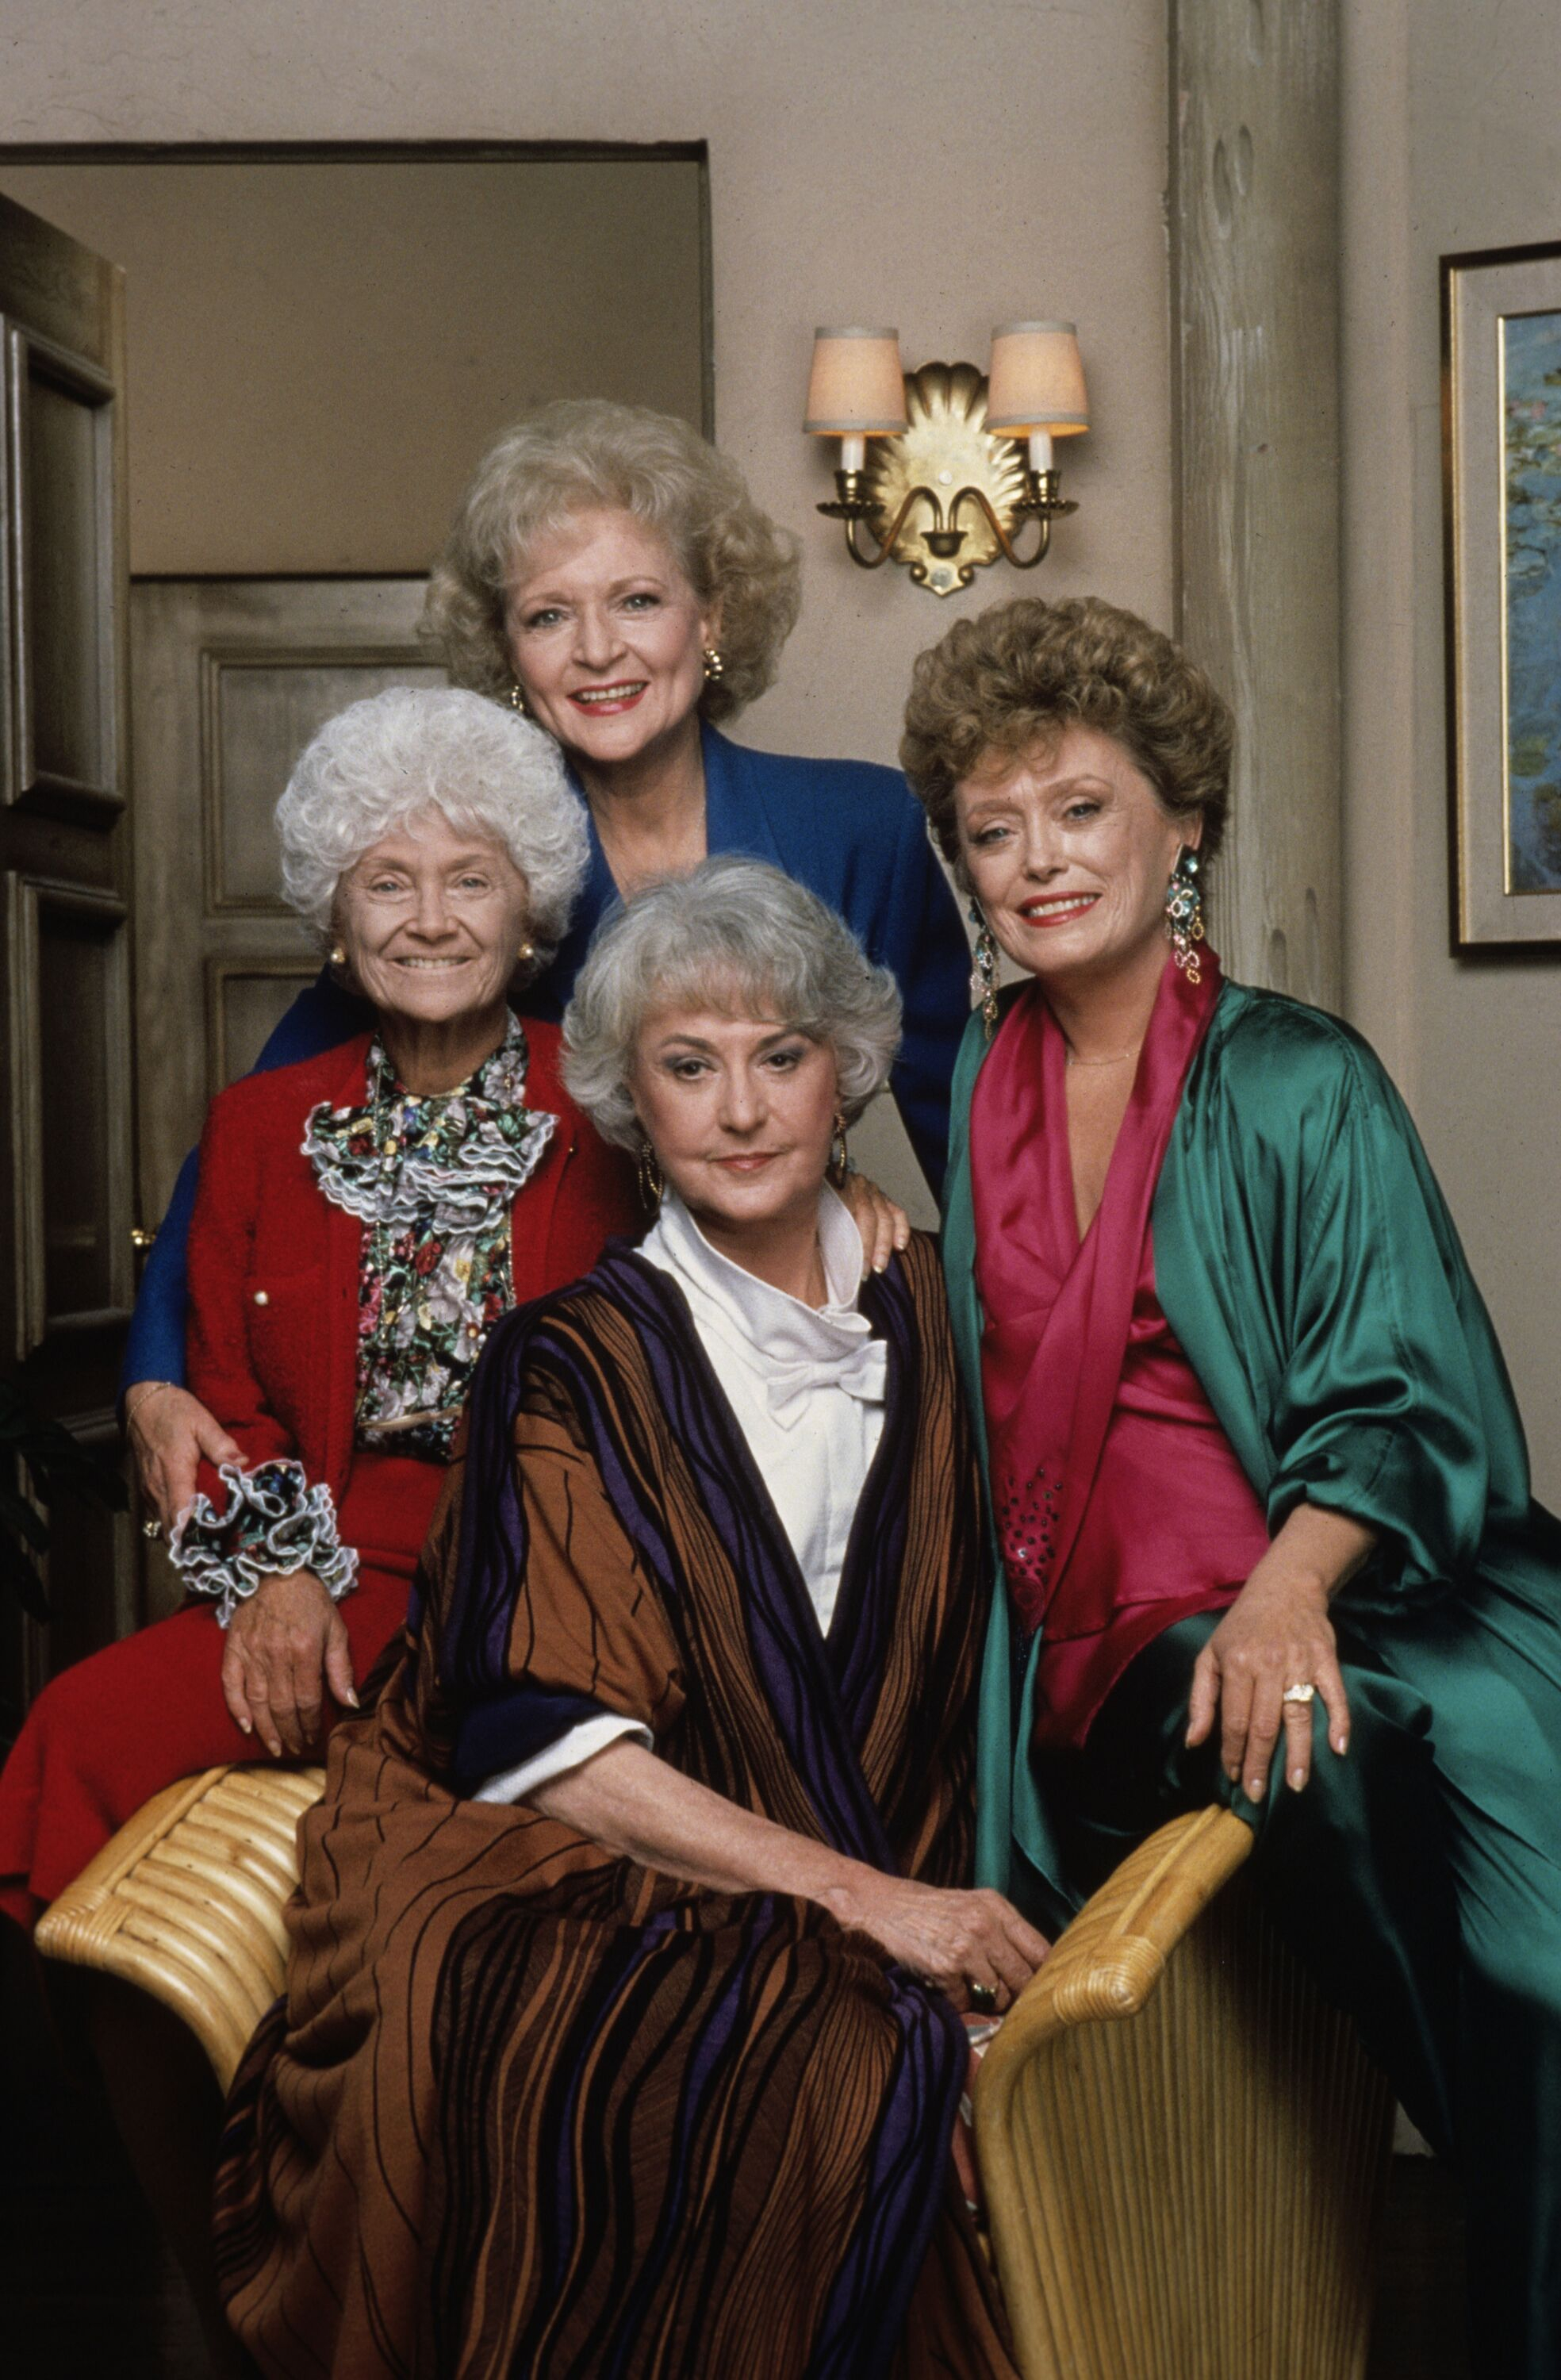 THE GOLDEN GIRLS - 9/14/85 - 9/14/92, Top: BETTY WHITE (Rose); ESTELLE GETTY (Sophia), RUE MCCLANAHAN (Blanche); BEA ARTHUR (Dorothy) | Photo: Getty Images